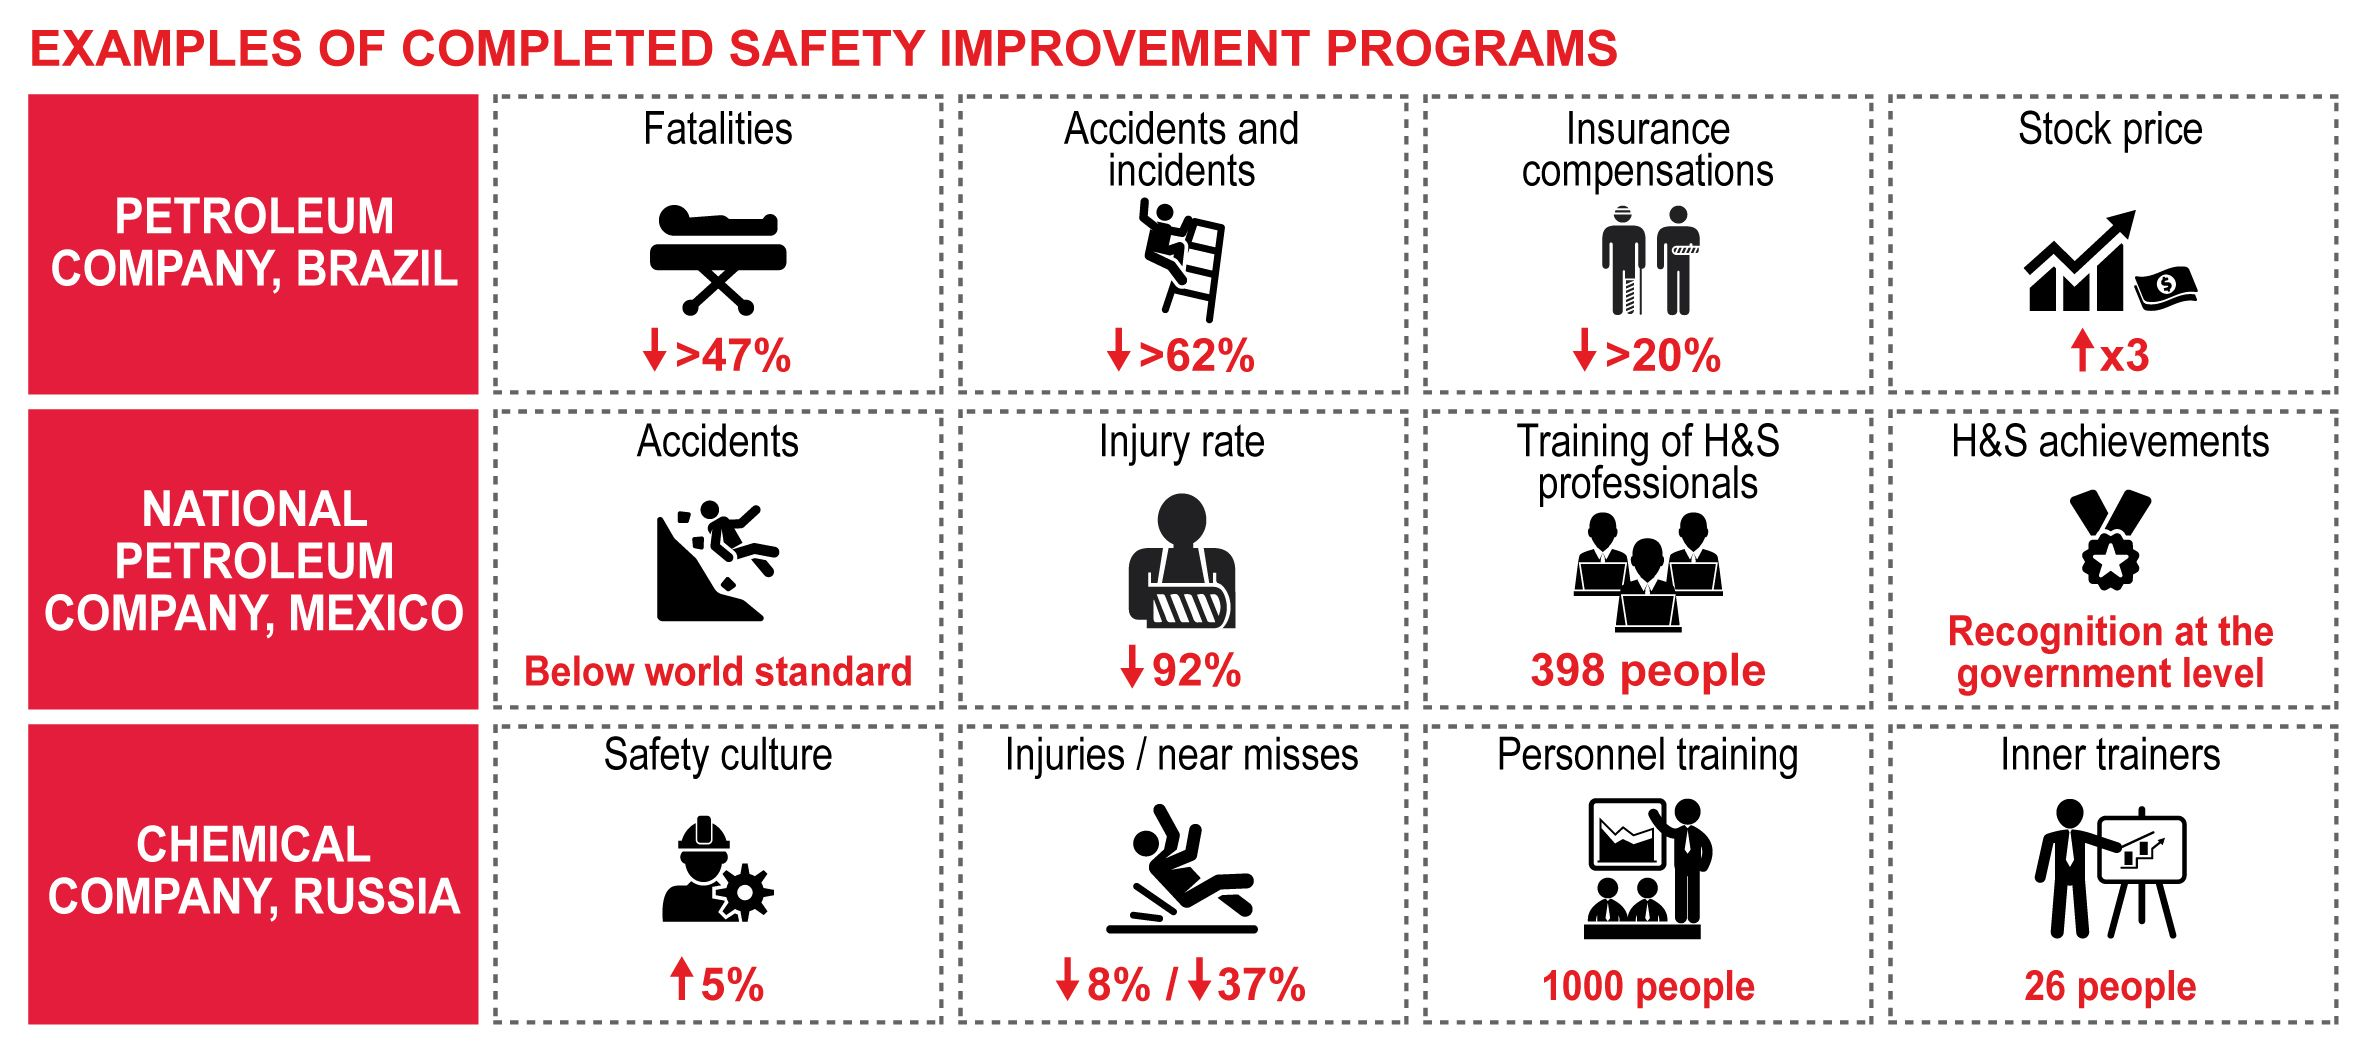 safety-improvement-program